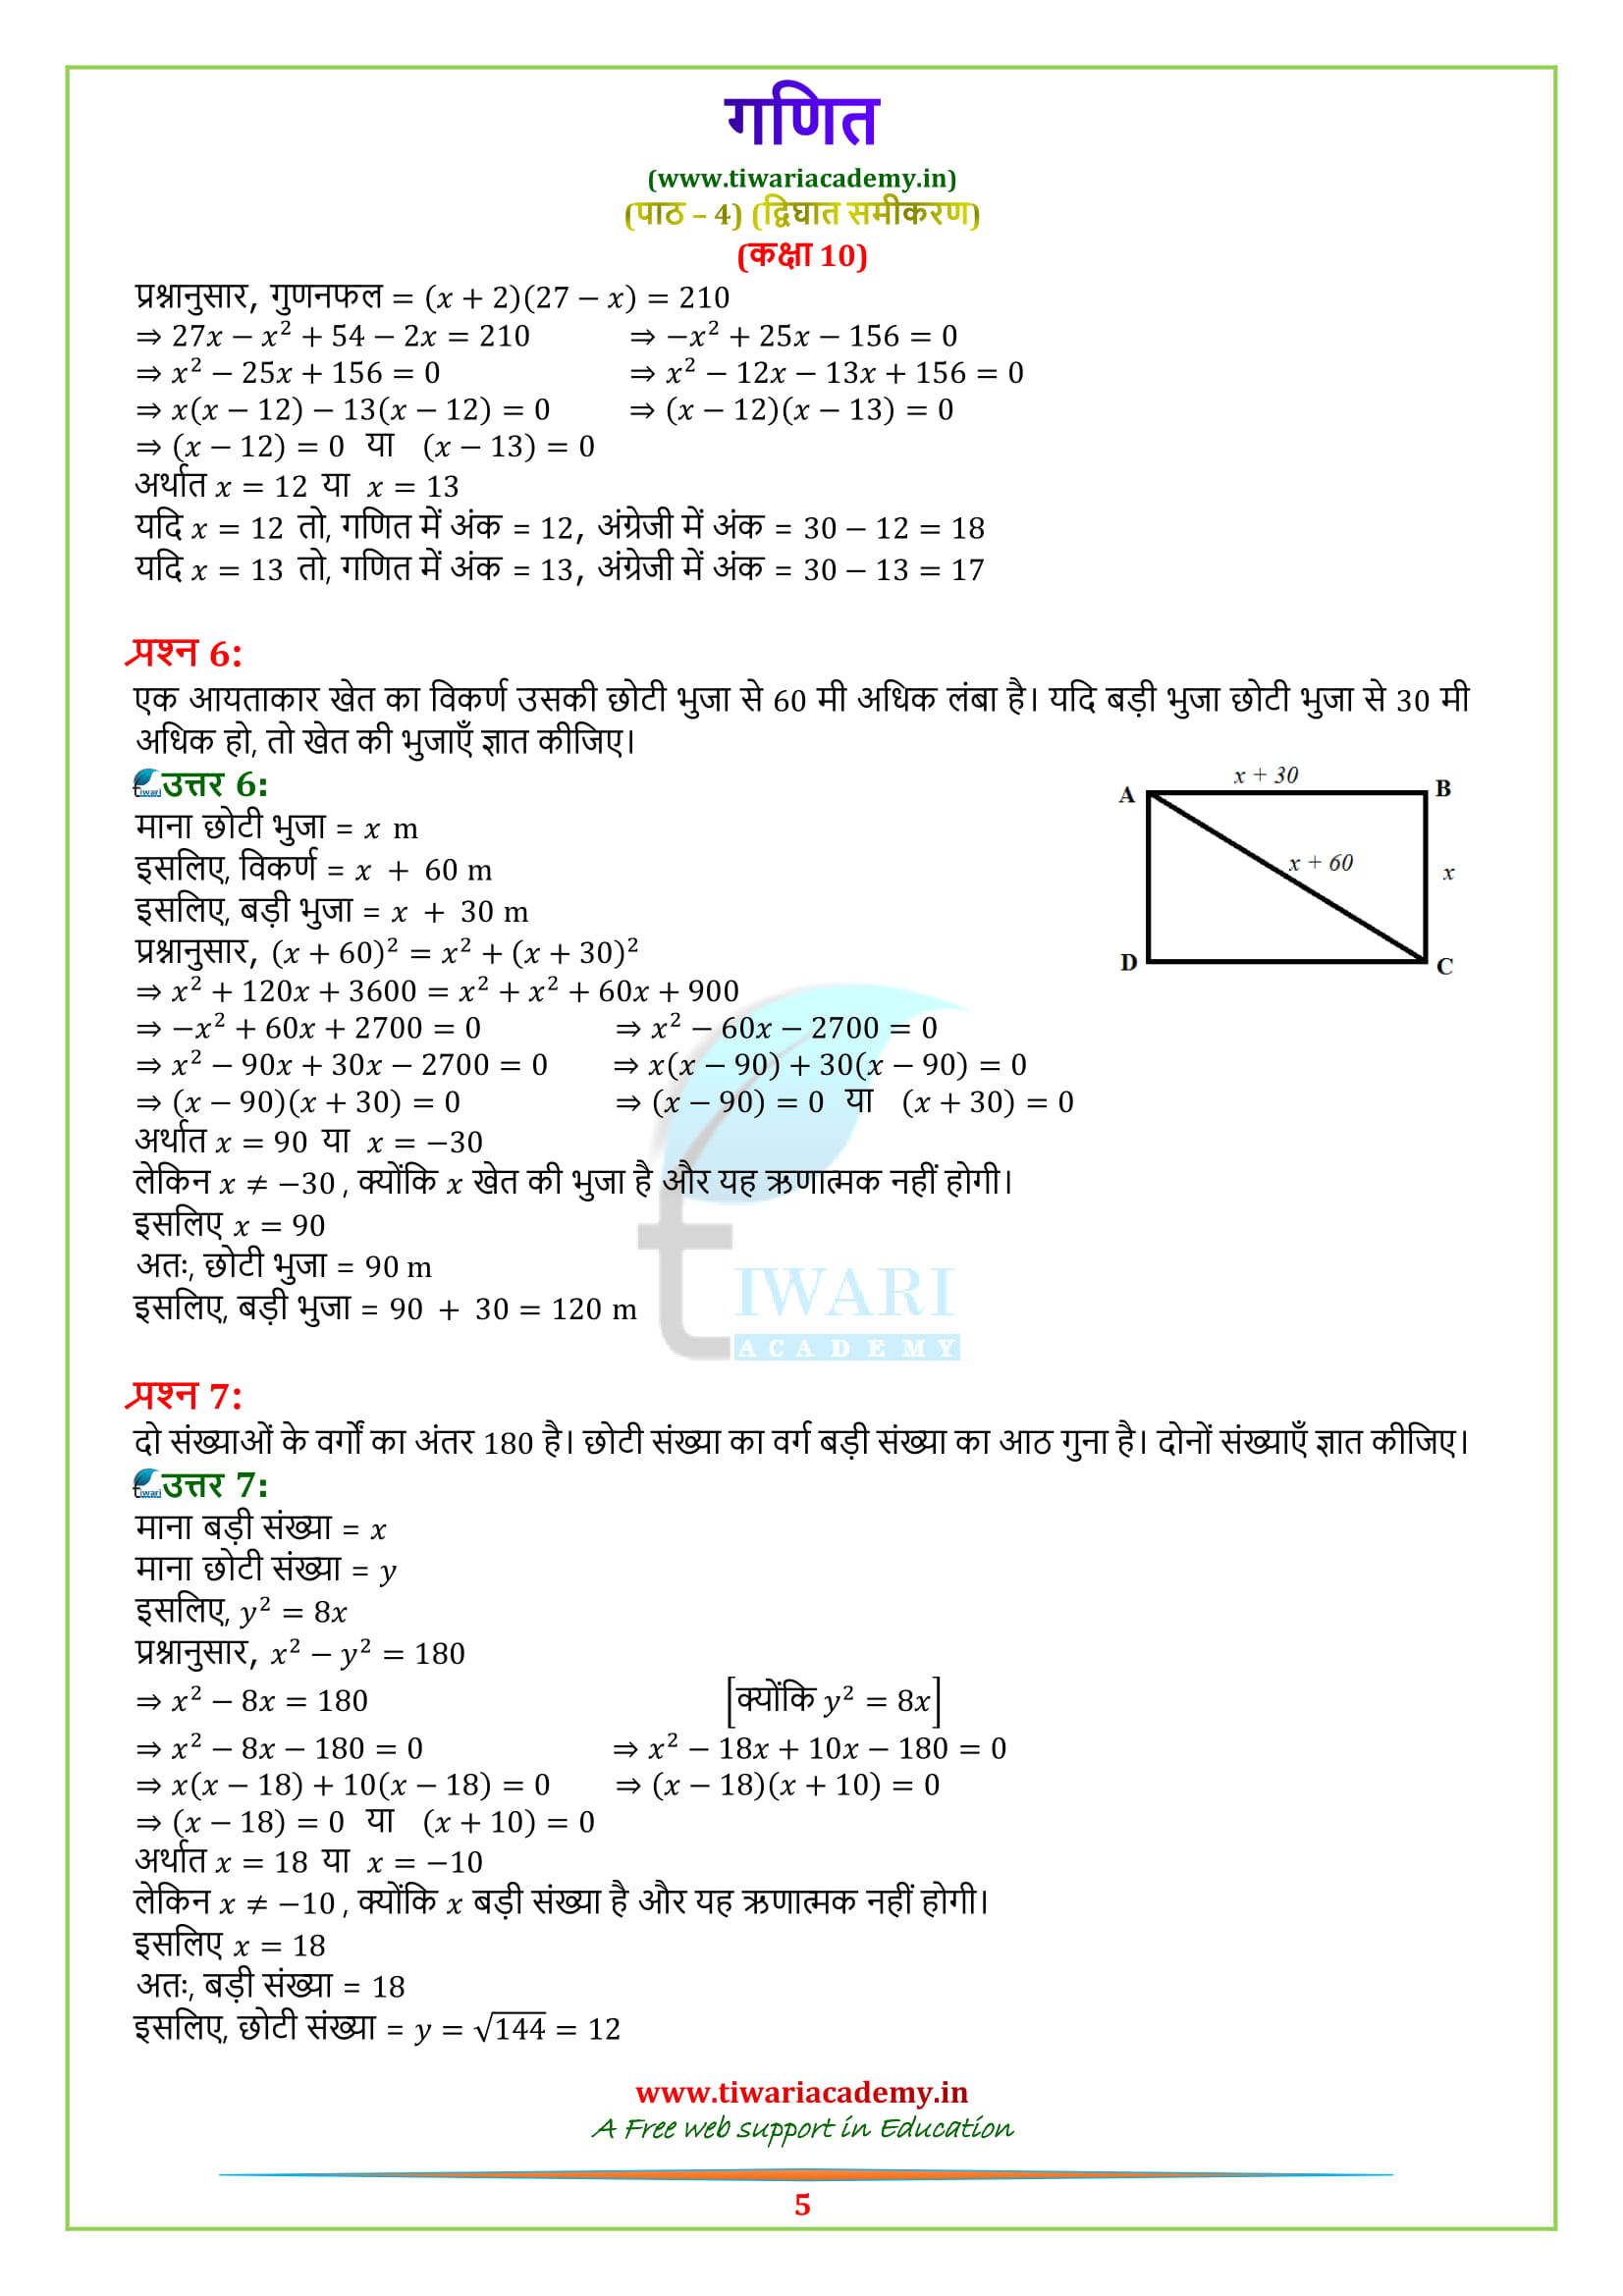 10 Maths chapter 4 exercise 4.3 solutions for up and mp board students